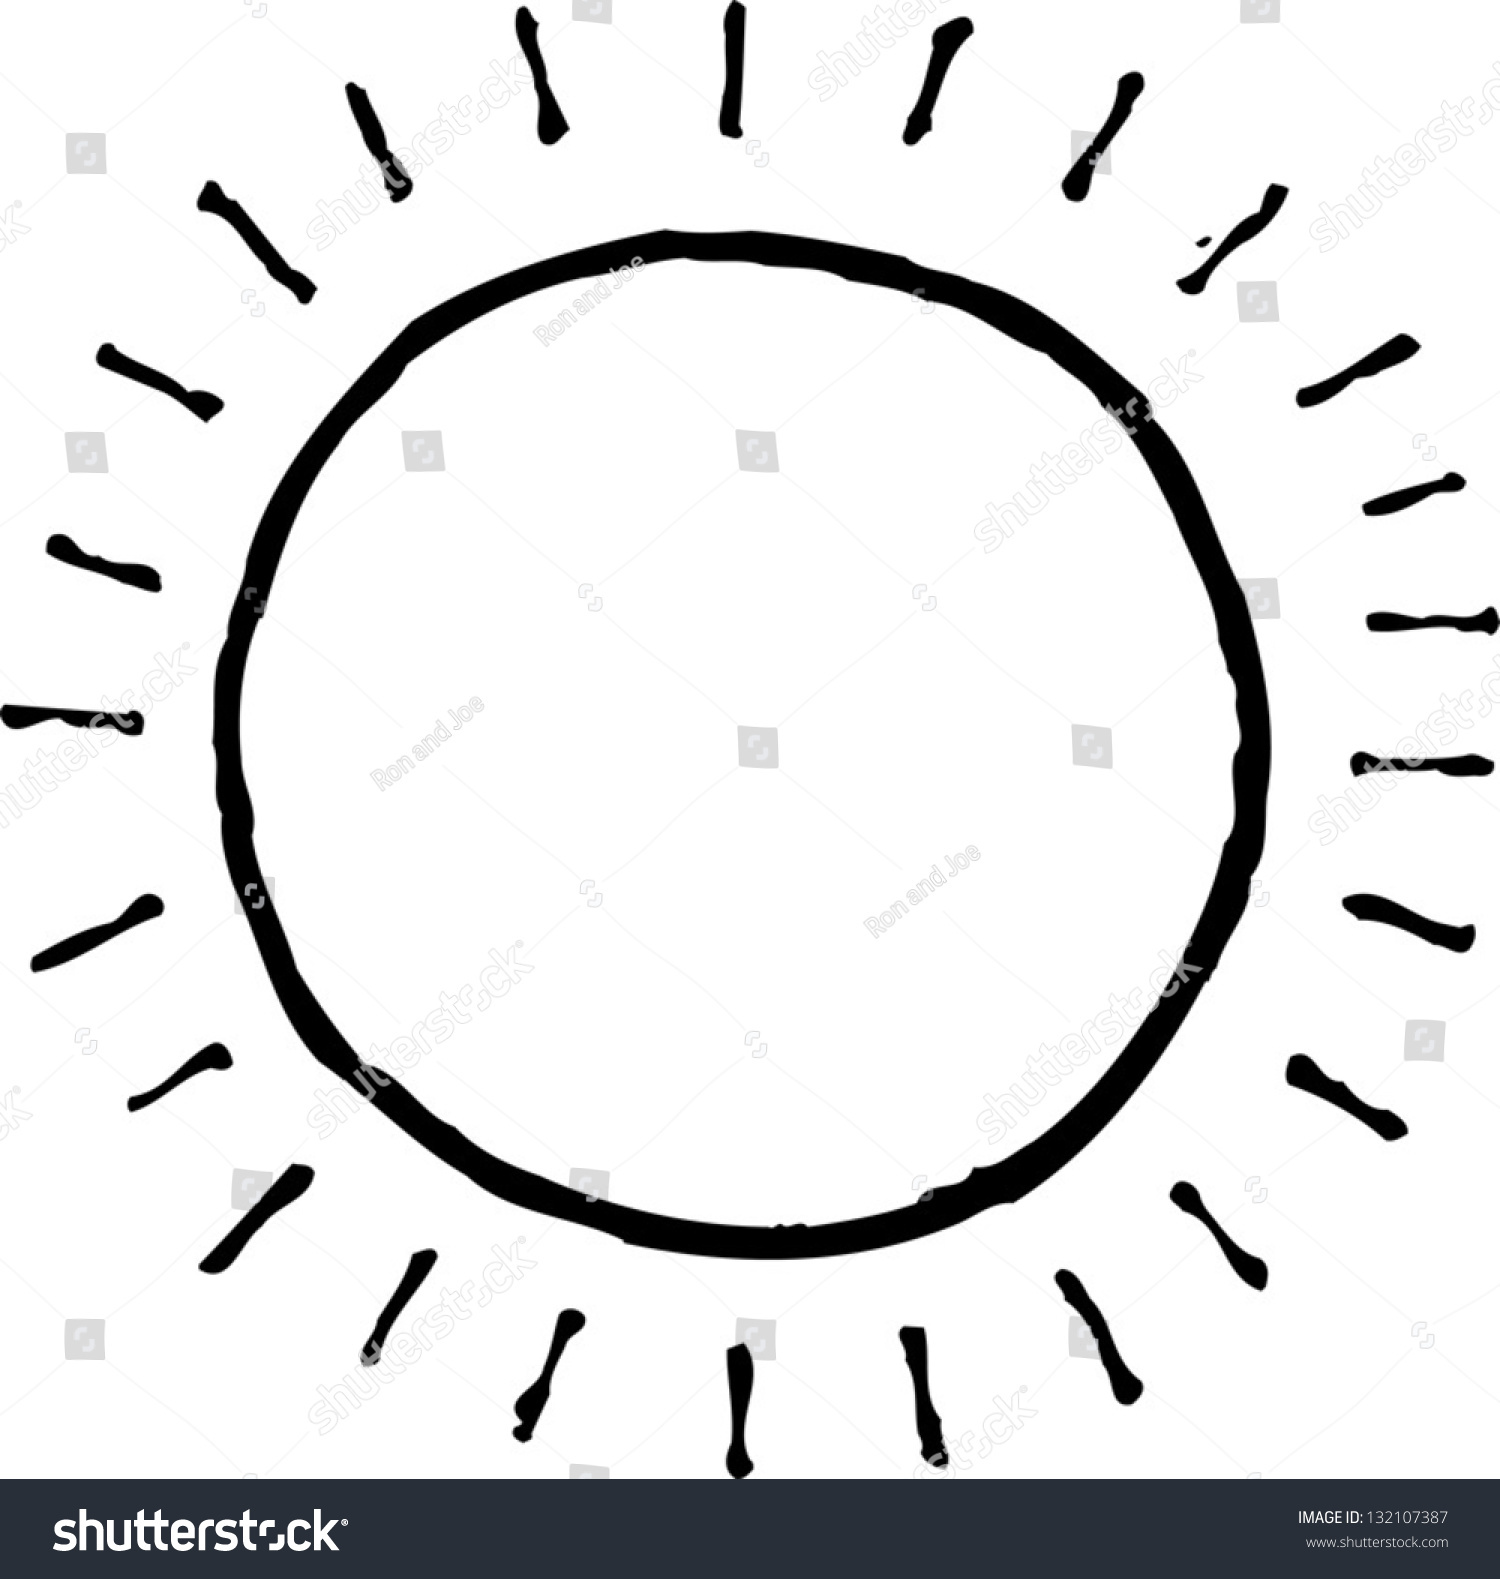 Black And White Vector Illustration Of The Sun - 132107387 ...